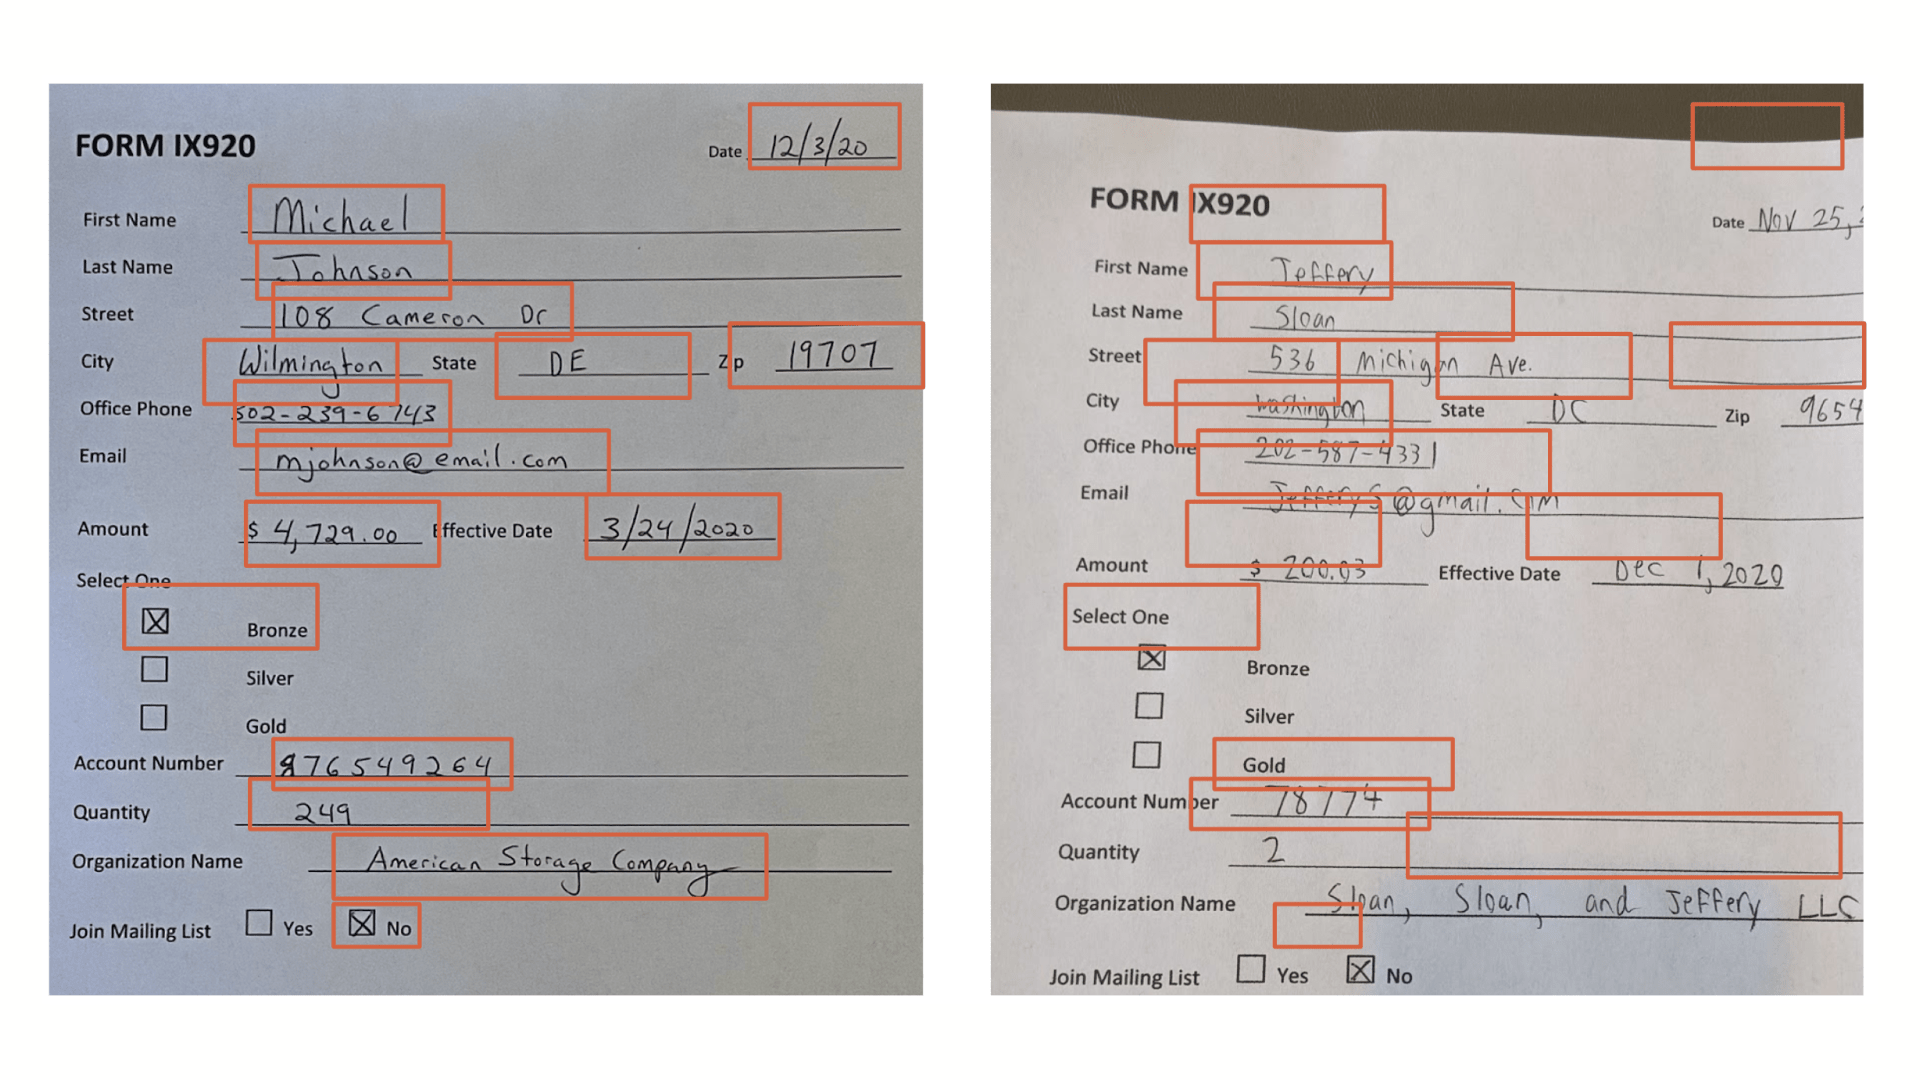 image of two forms with terms highlighted in red. On the left it shows the form straight on, on the right shows the same form but slightly tilted causing the red boxes to not align correctly.